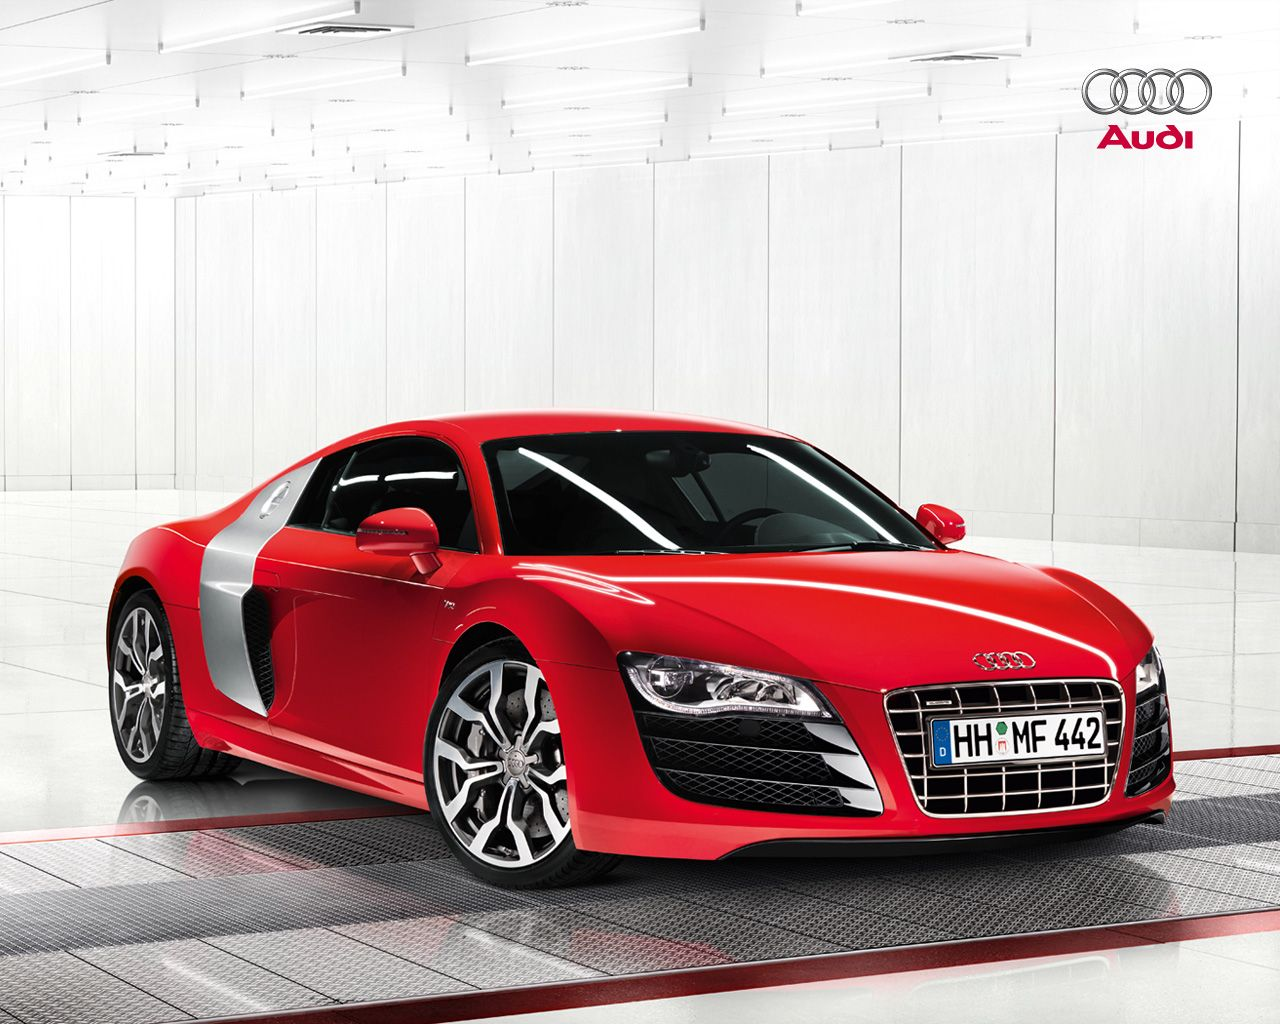 Audi r8 pictures and specifications rapidcars exotic car pictures videos specifications